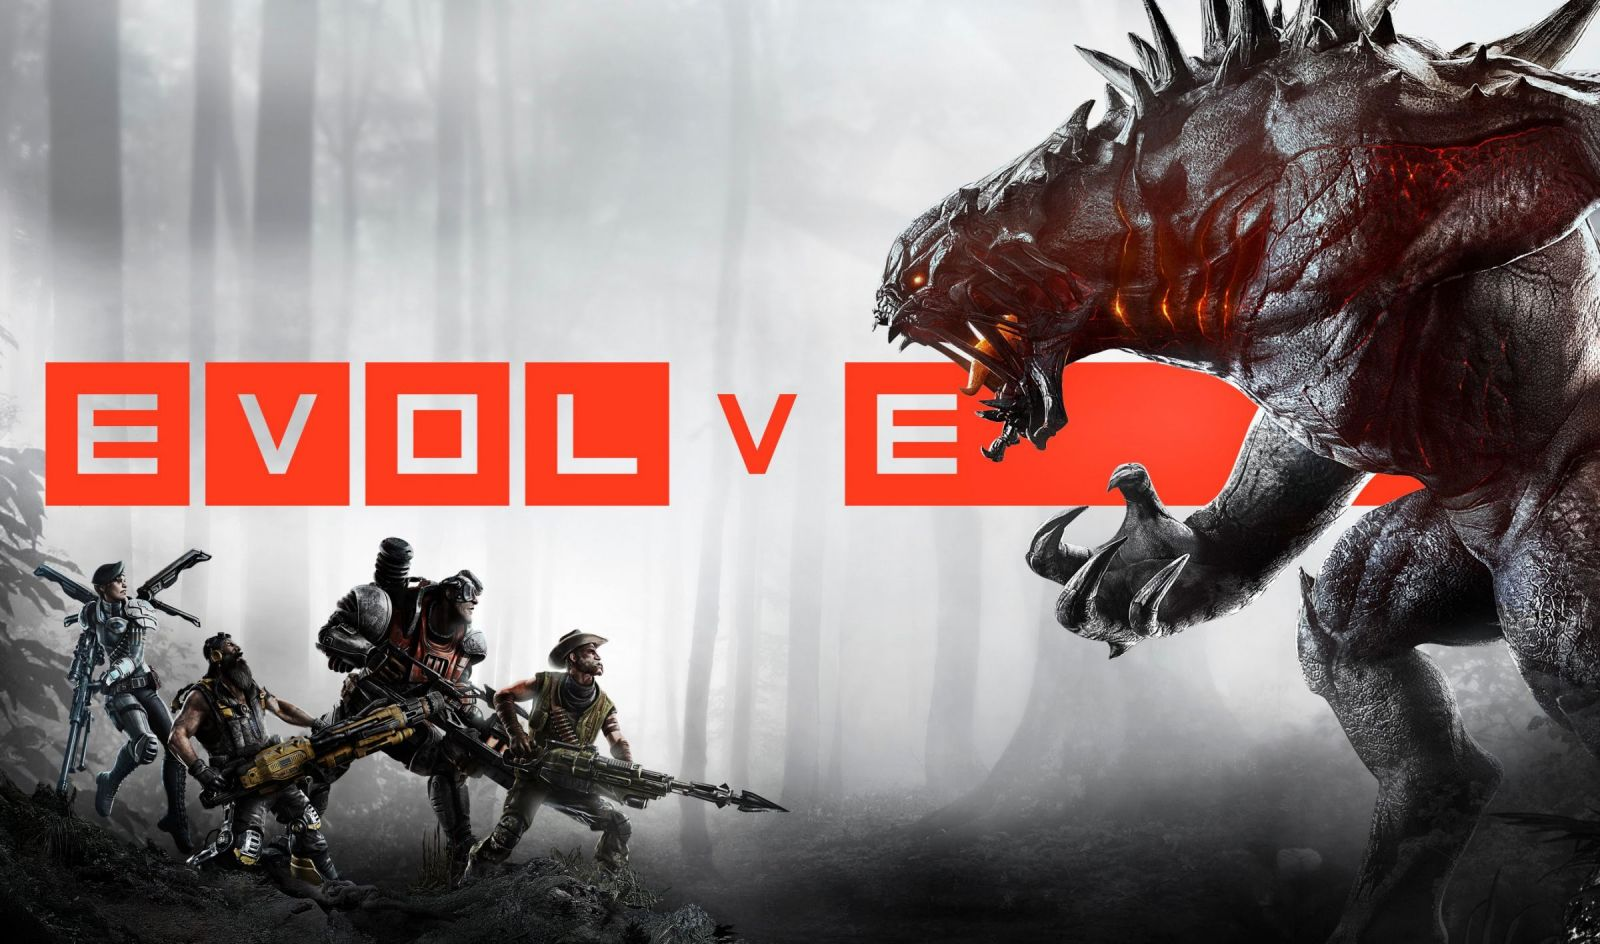 EVOLVE by Turtle Rock Studios